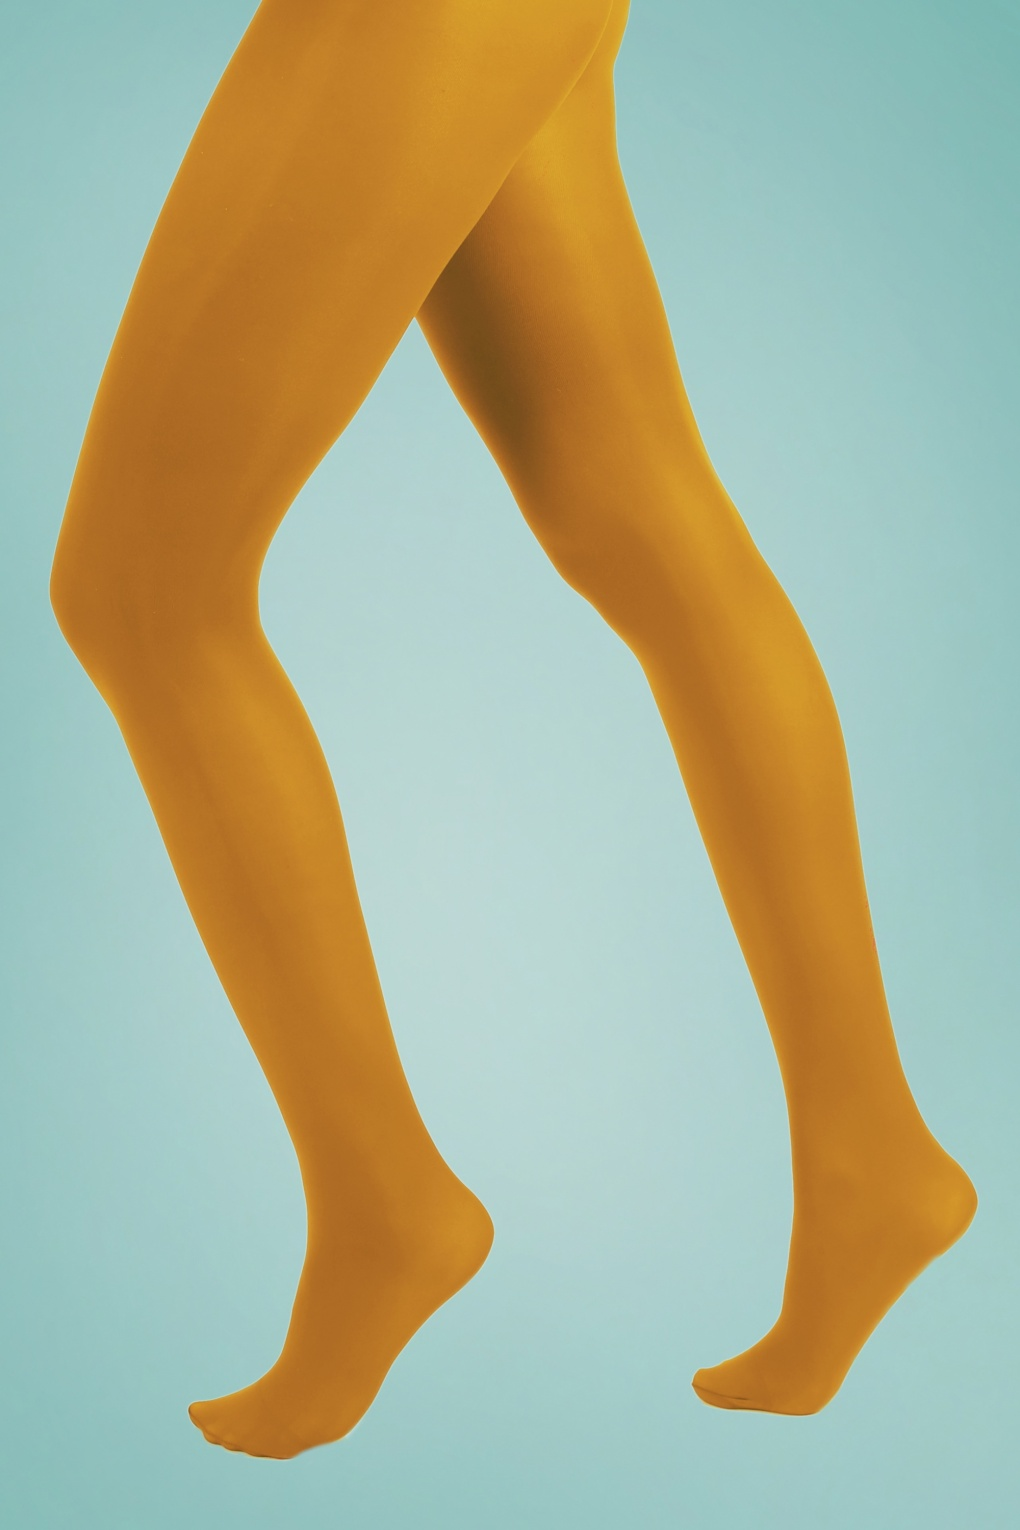 Vintage Socks | 1920s, 1930s, 1940s, 1950s, 1960s History 60s Opaque Tights in Mustard £6.03 AT vintagedancer.com